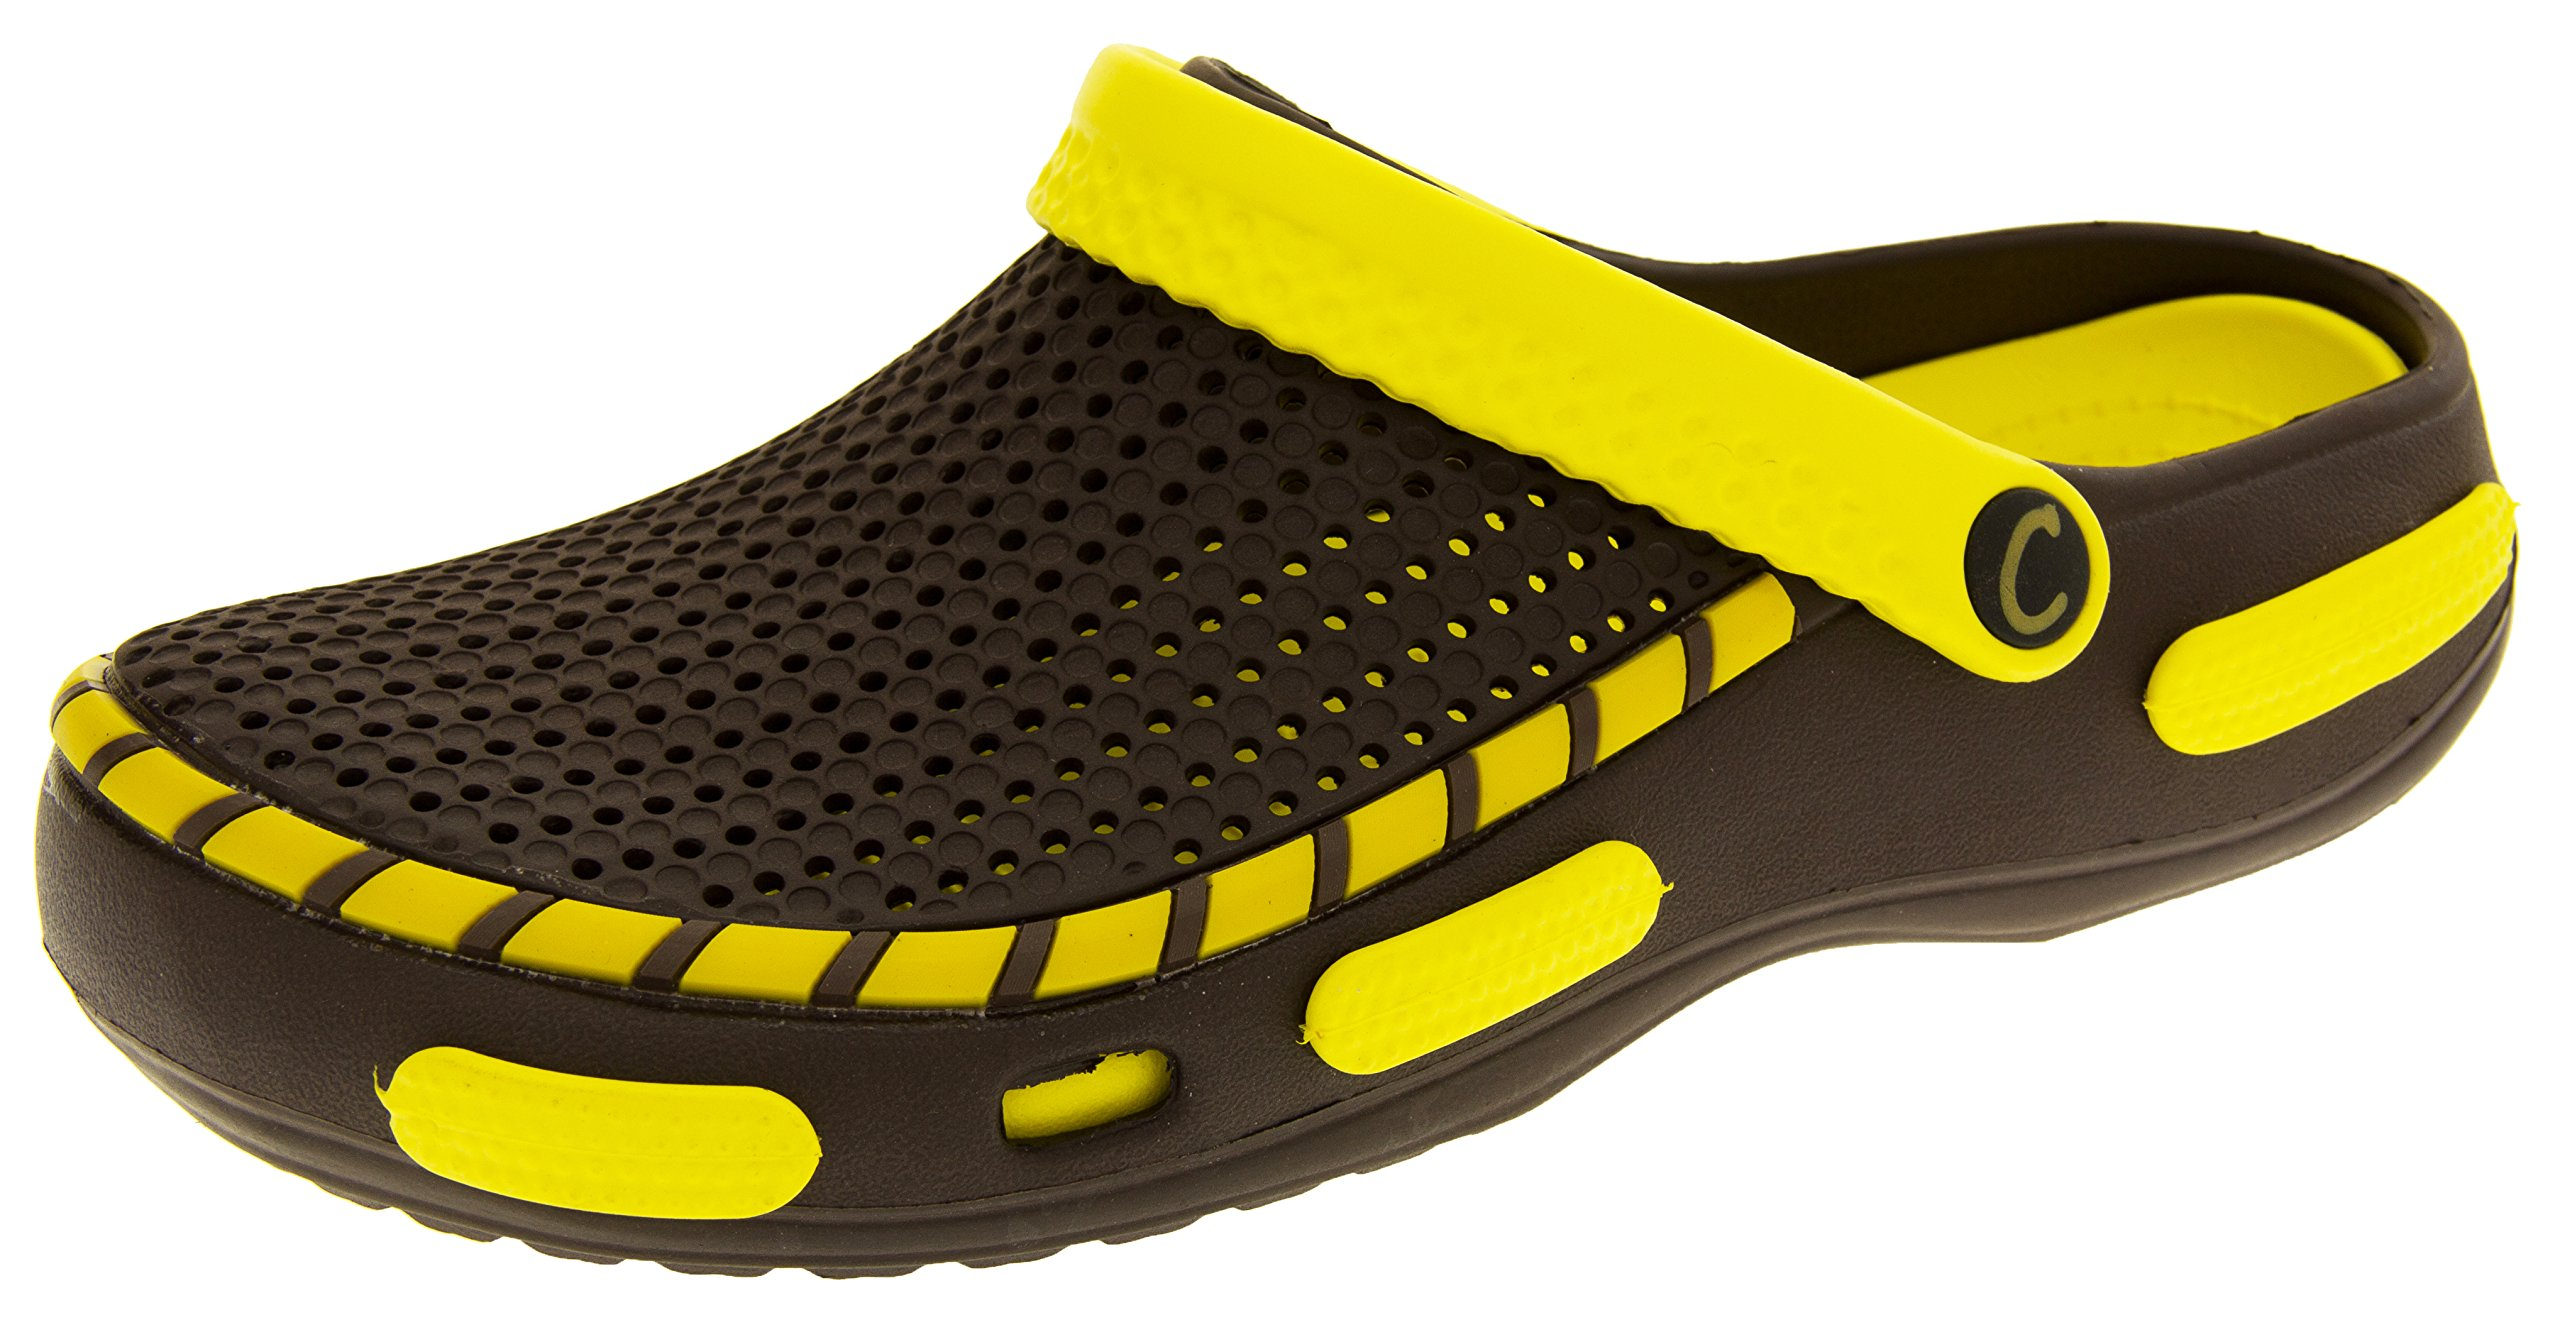 Coolers Mens Beach Clog Sandals Yellow 11 D(M) US